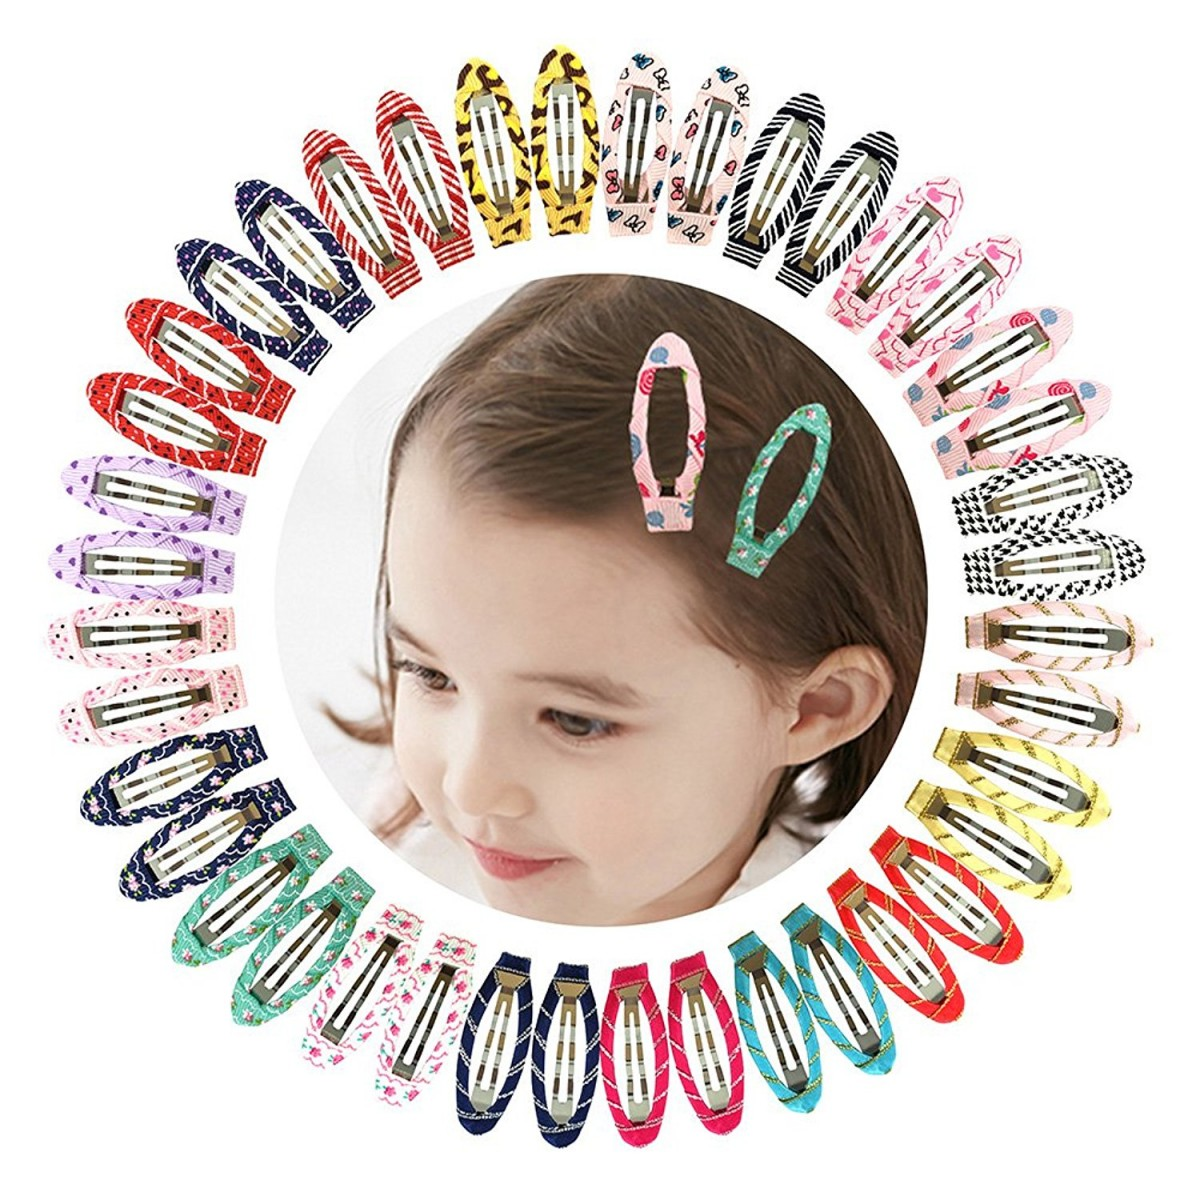 Ruyaa 2 Snap Clips No Slip Wrapped Hair Barrettes for Toddlers Girls ... 31e7e61873c